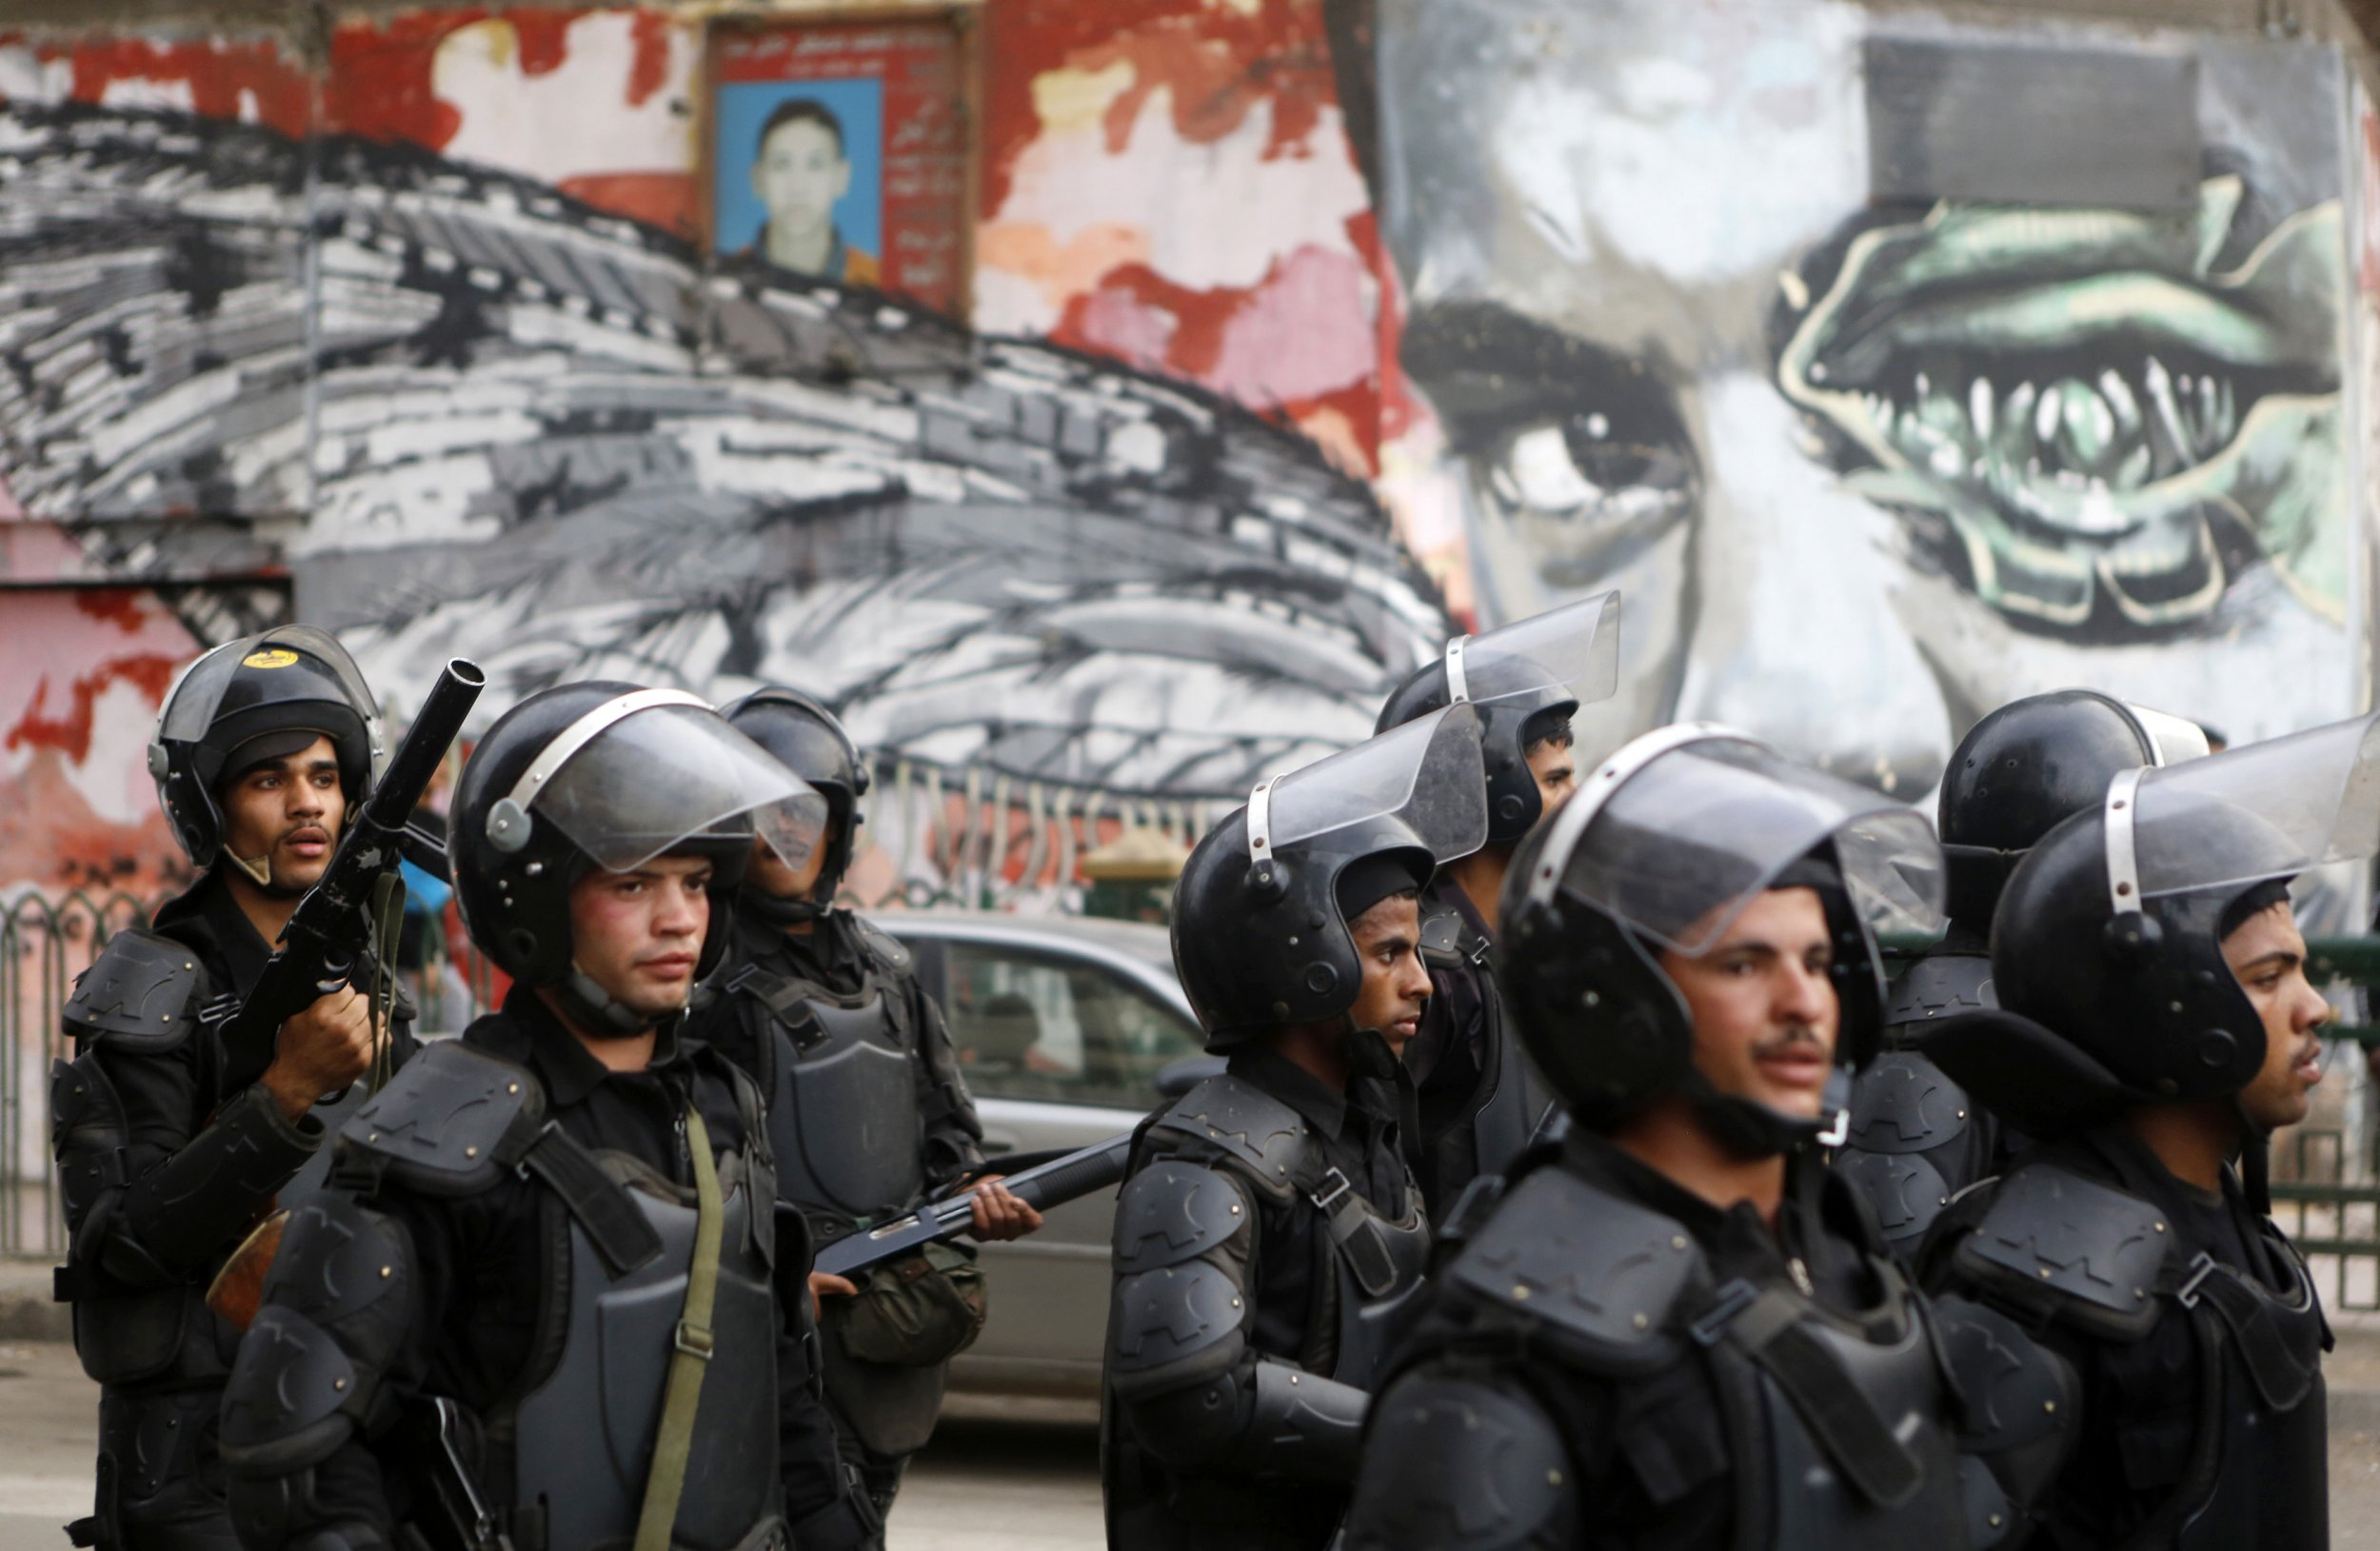 the dissent in egypt Prison, torture and abduction are abuses at the heart of the sisi regime say campaigners.